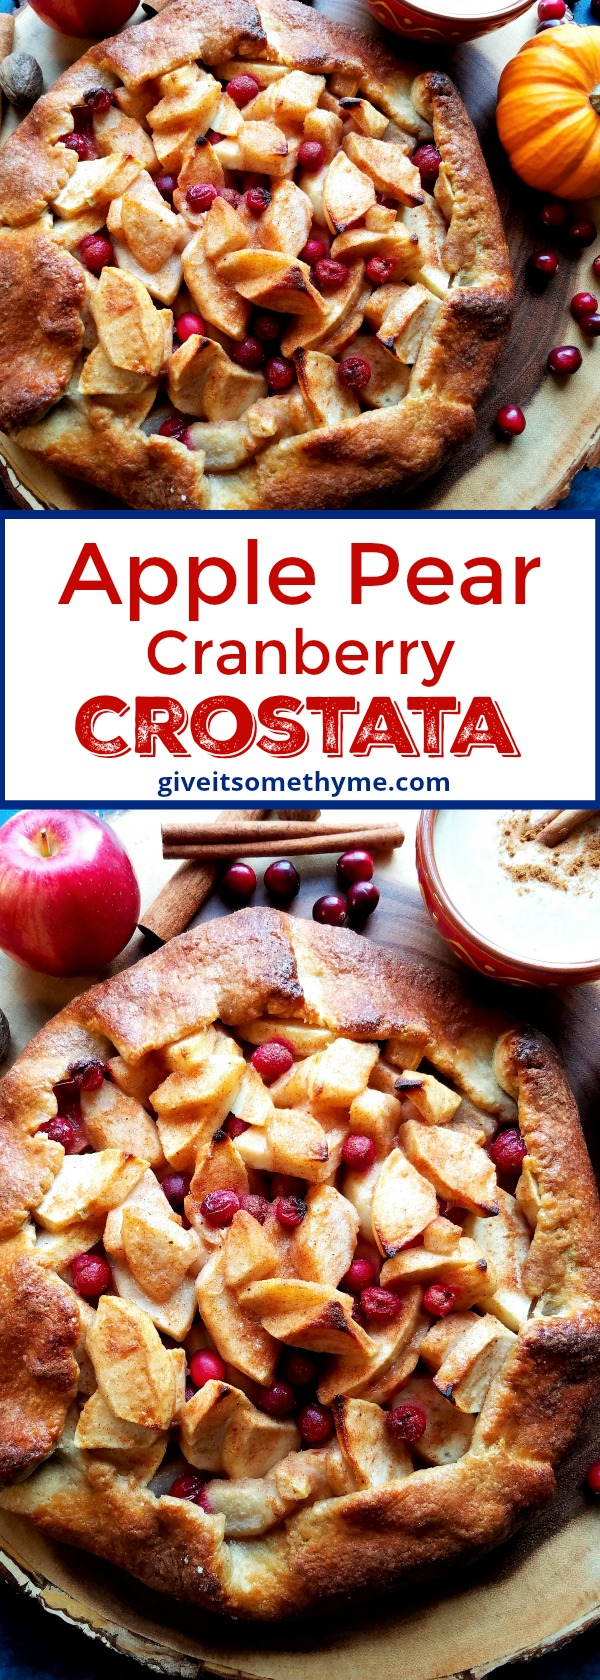 Apple Pear Cranberry Crostata - Give it Some Thyme